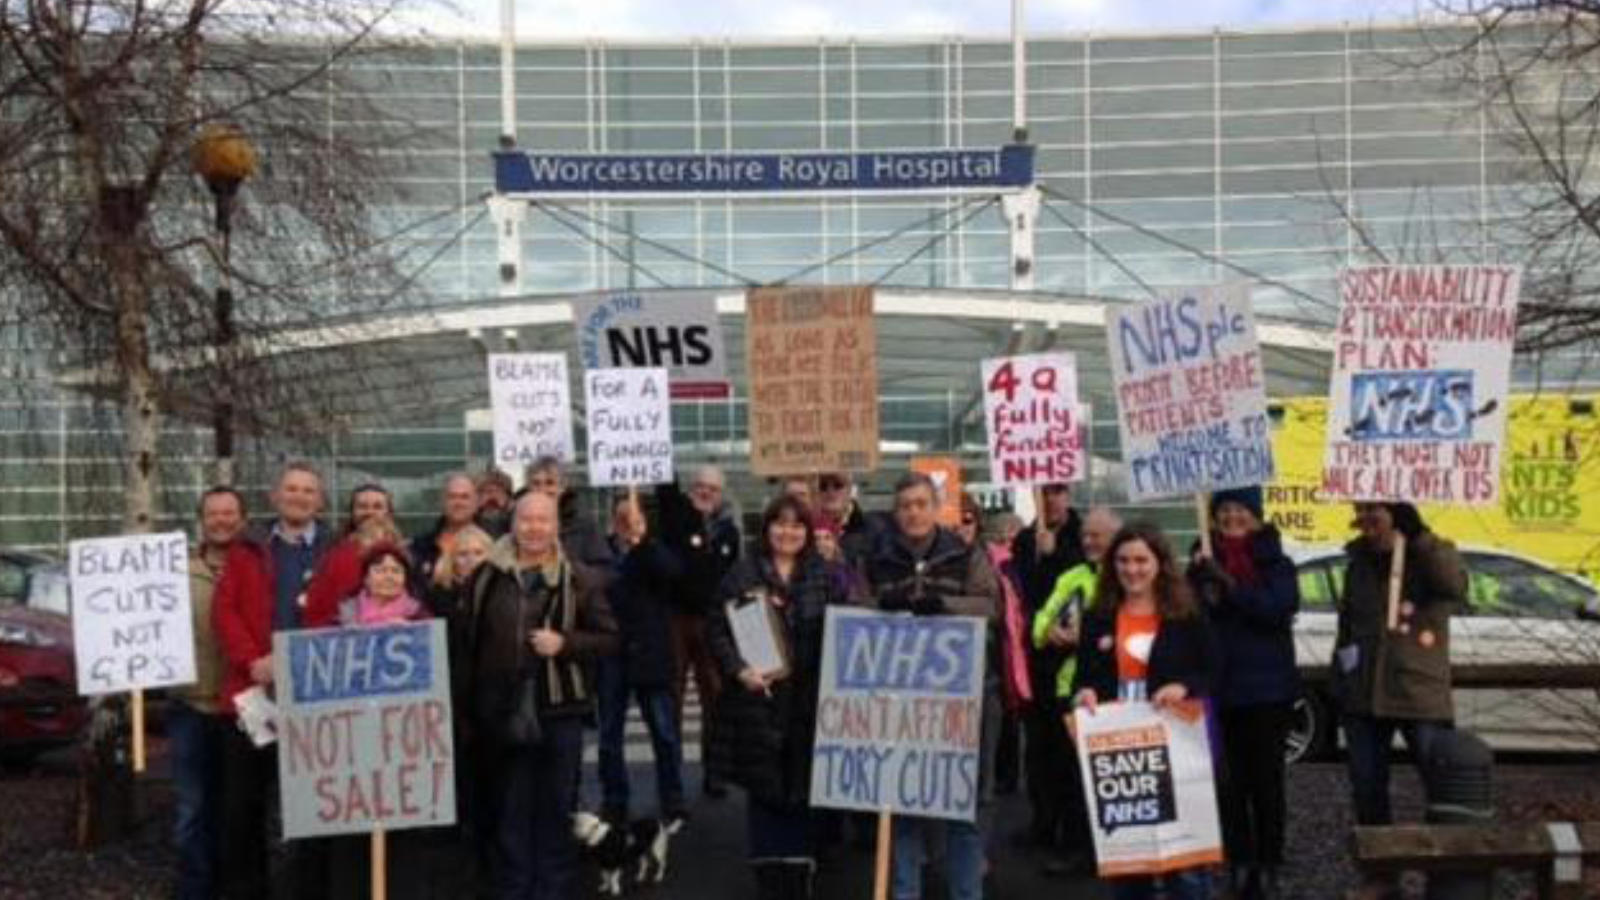 Johns organising team outside Worcestershire Hospital, Image: Georgie Lamming